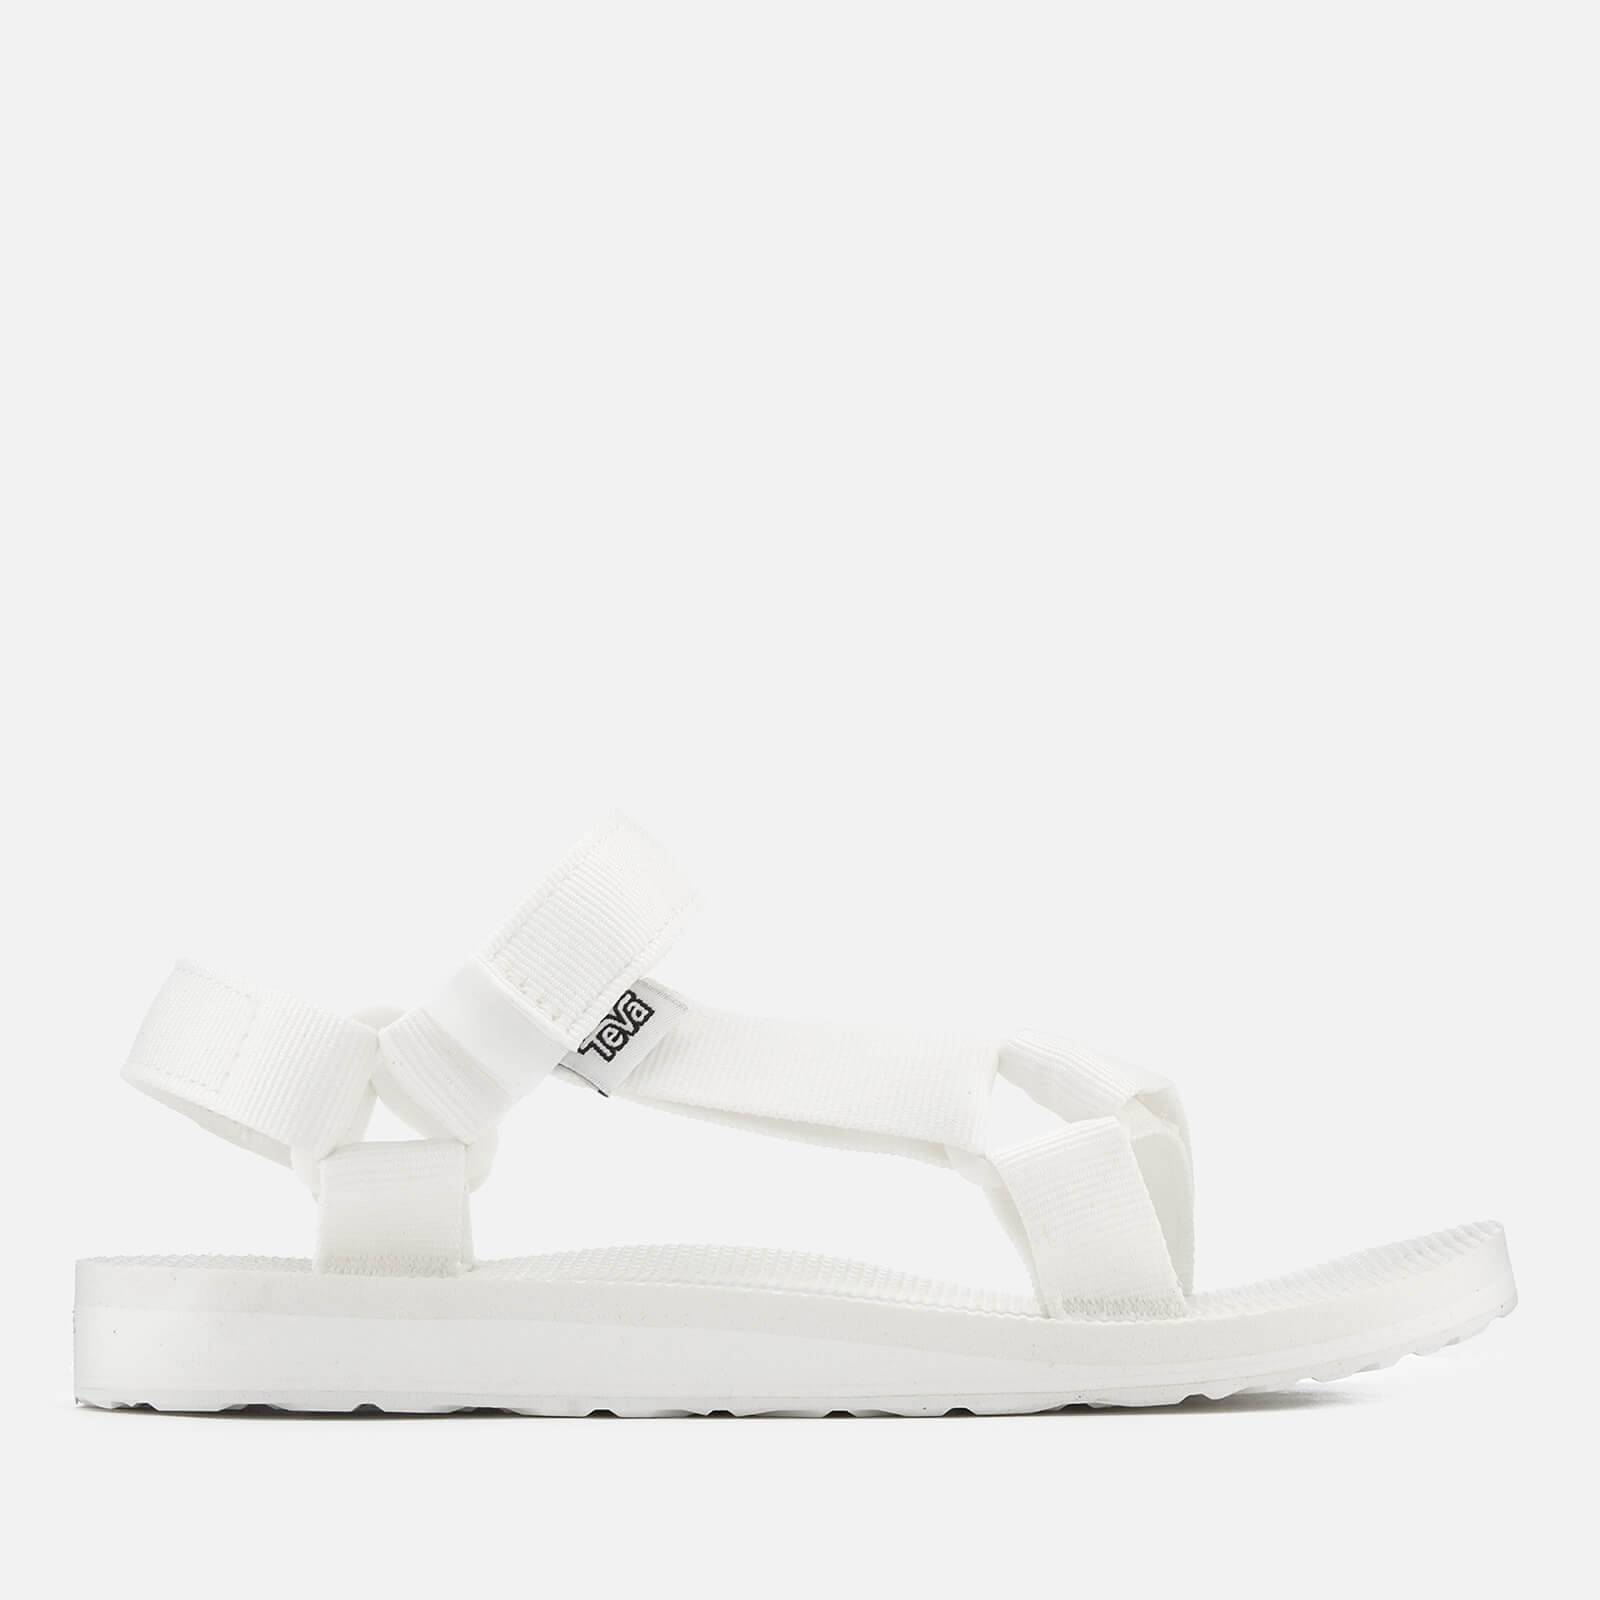 Teva Women's Original Universal Sport Sandals - Bright White - UK 5